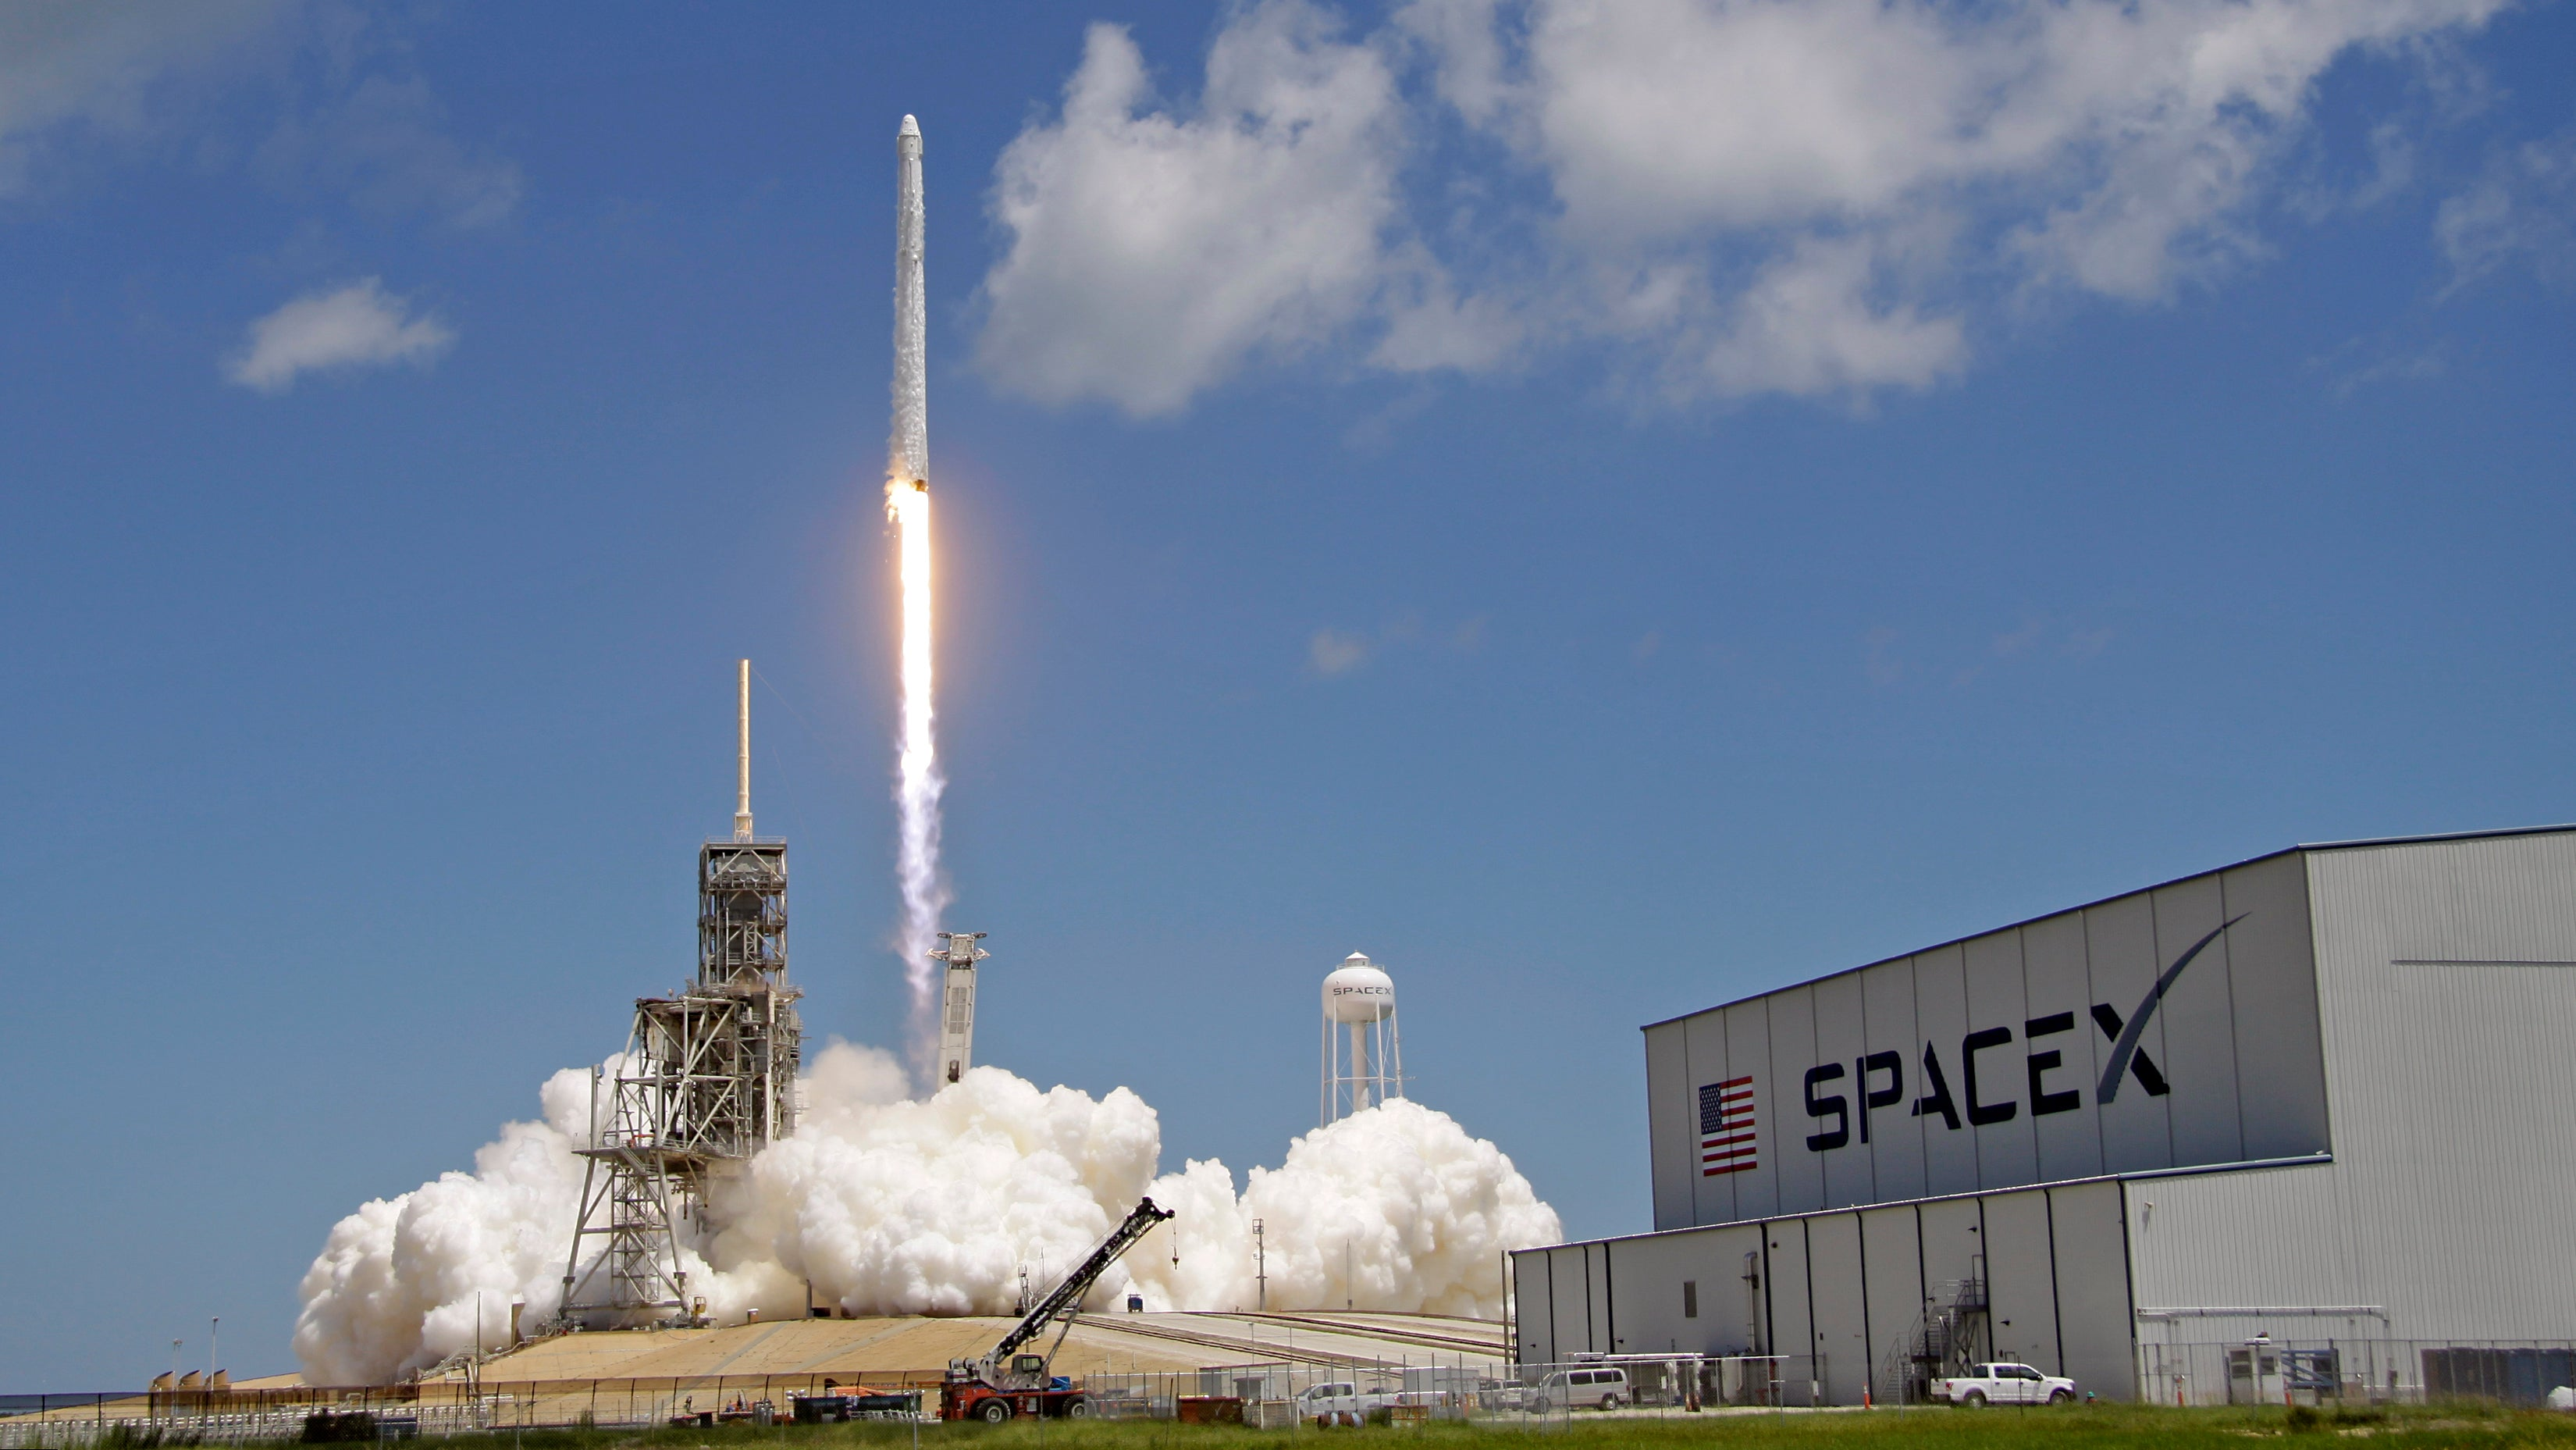 SpaceX Delays Next Falcon 9 Launch, Said To Carry Starlink Prototypes, To At Least February 21